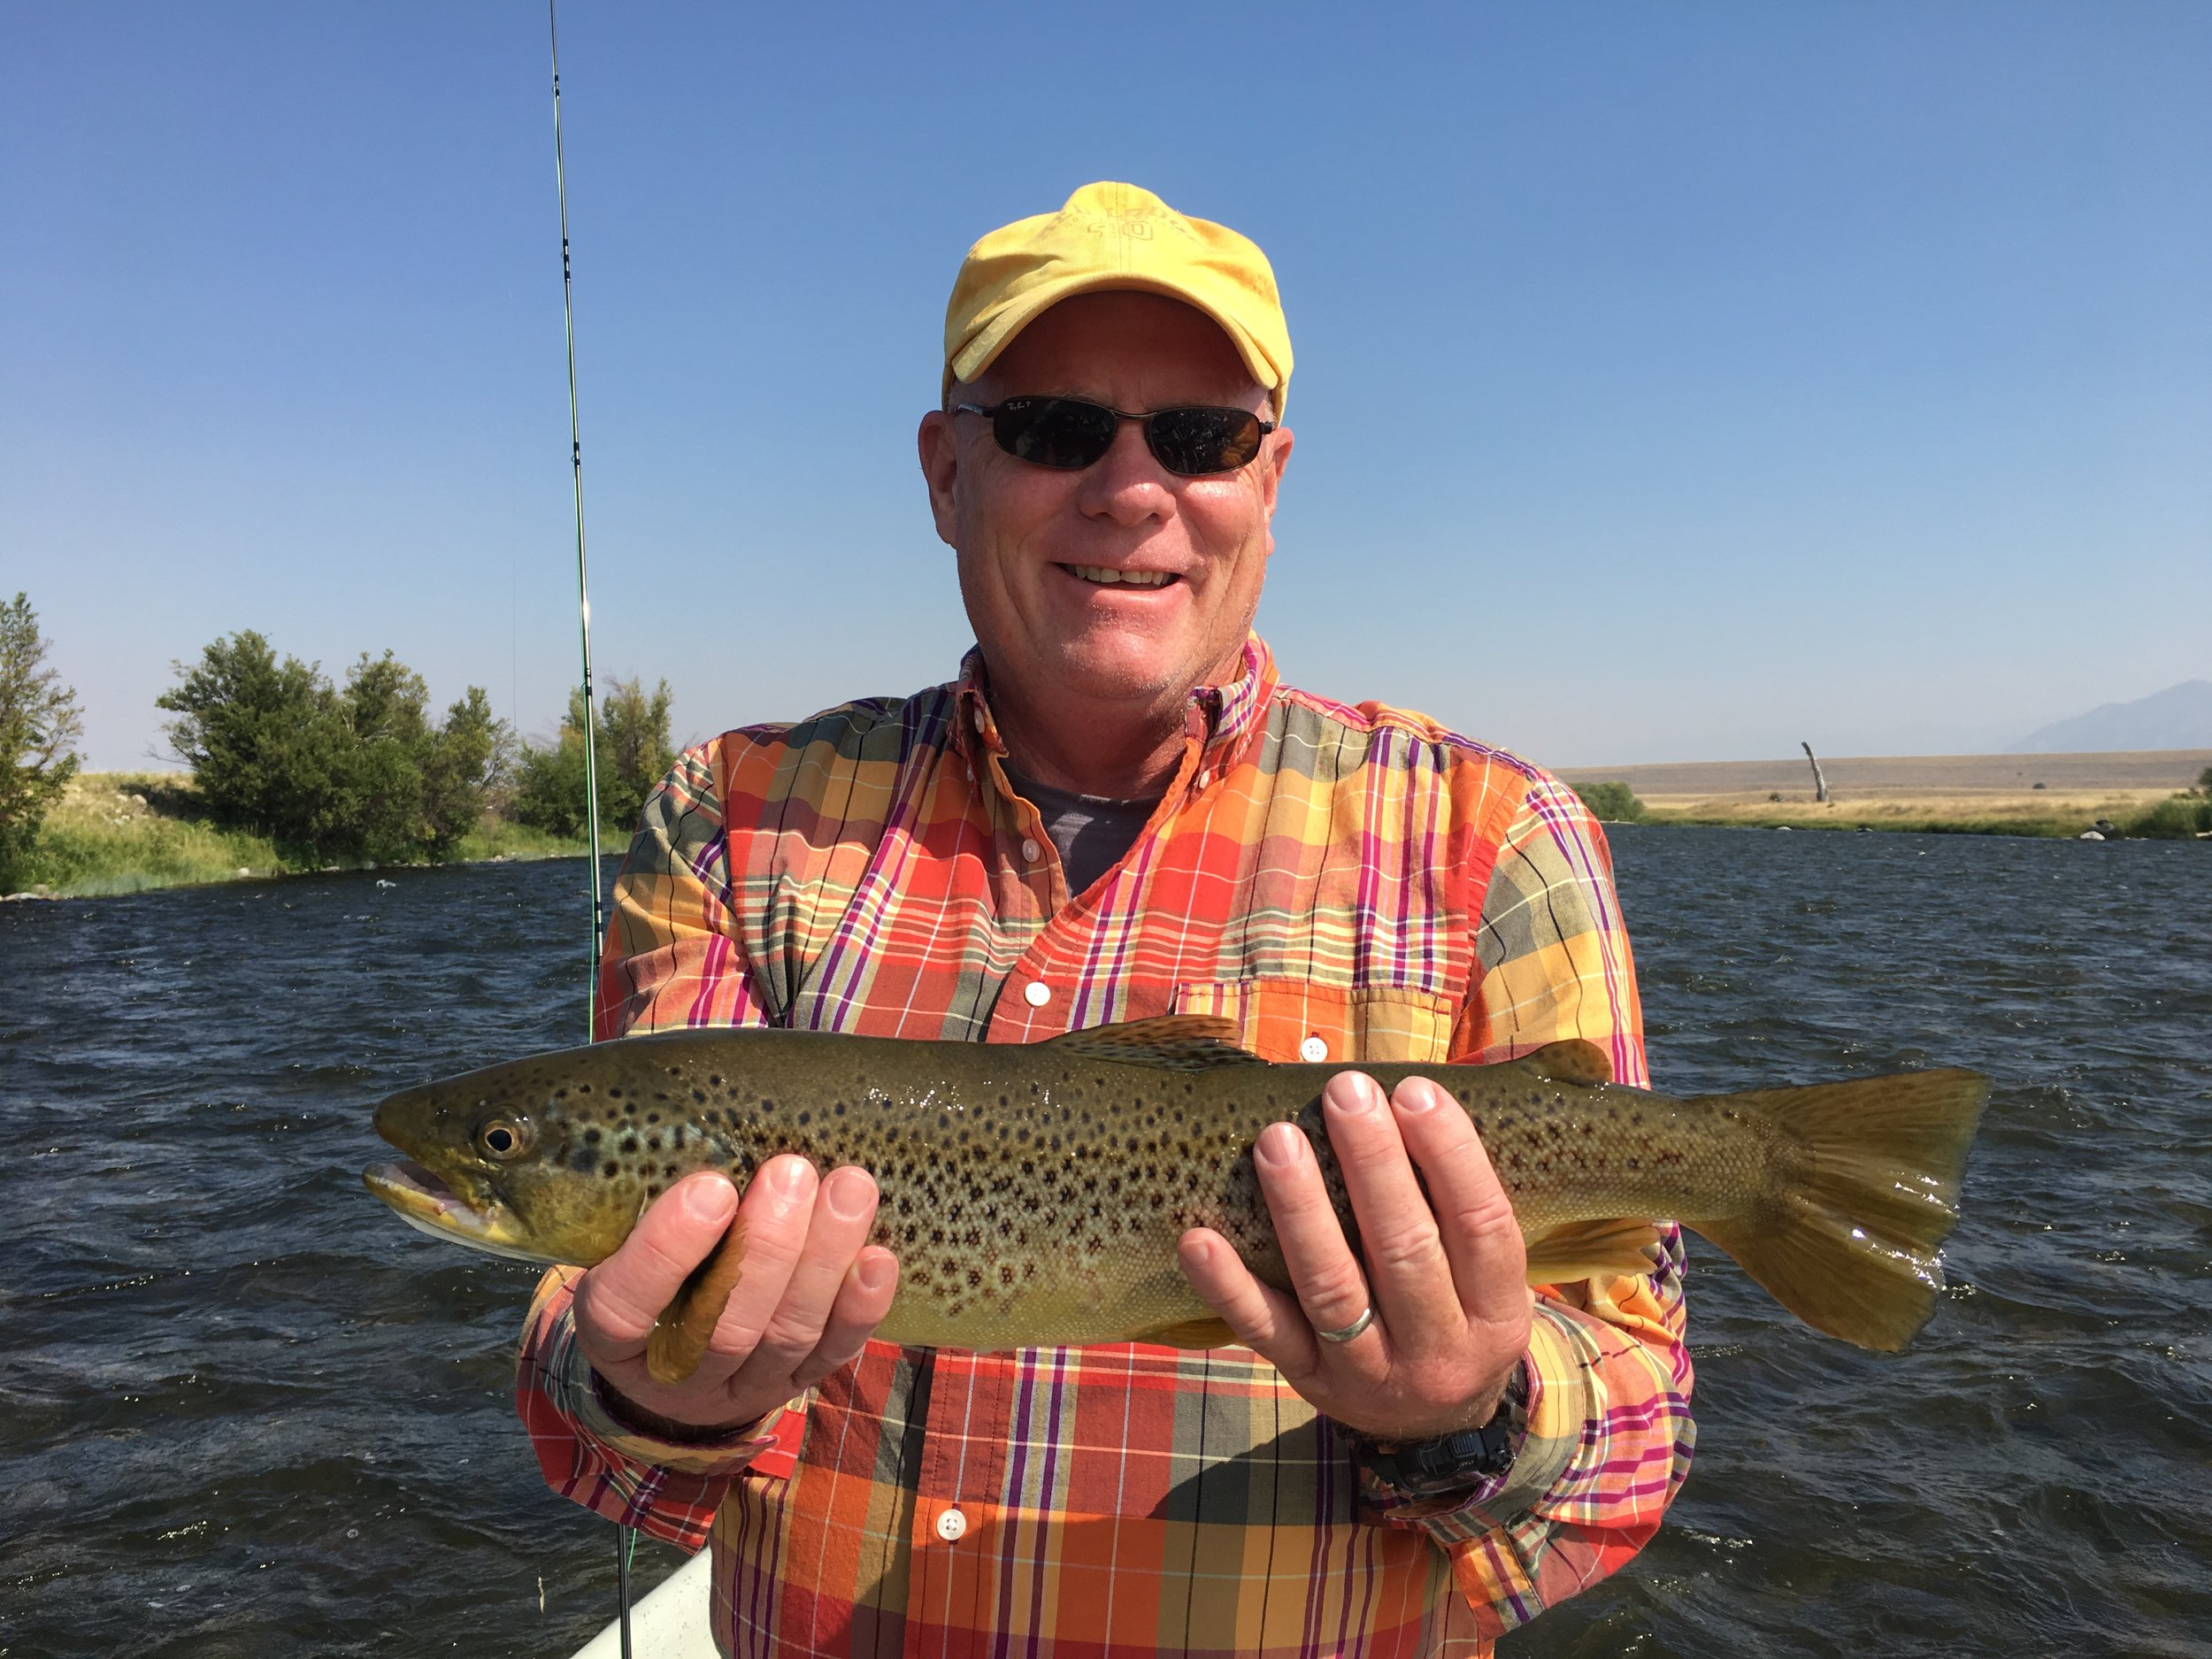 Randy with an early morning Brown Trout caught on a streamer